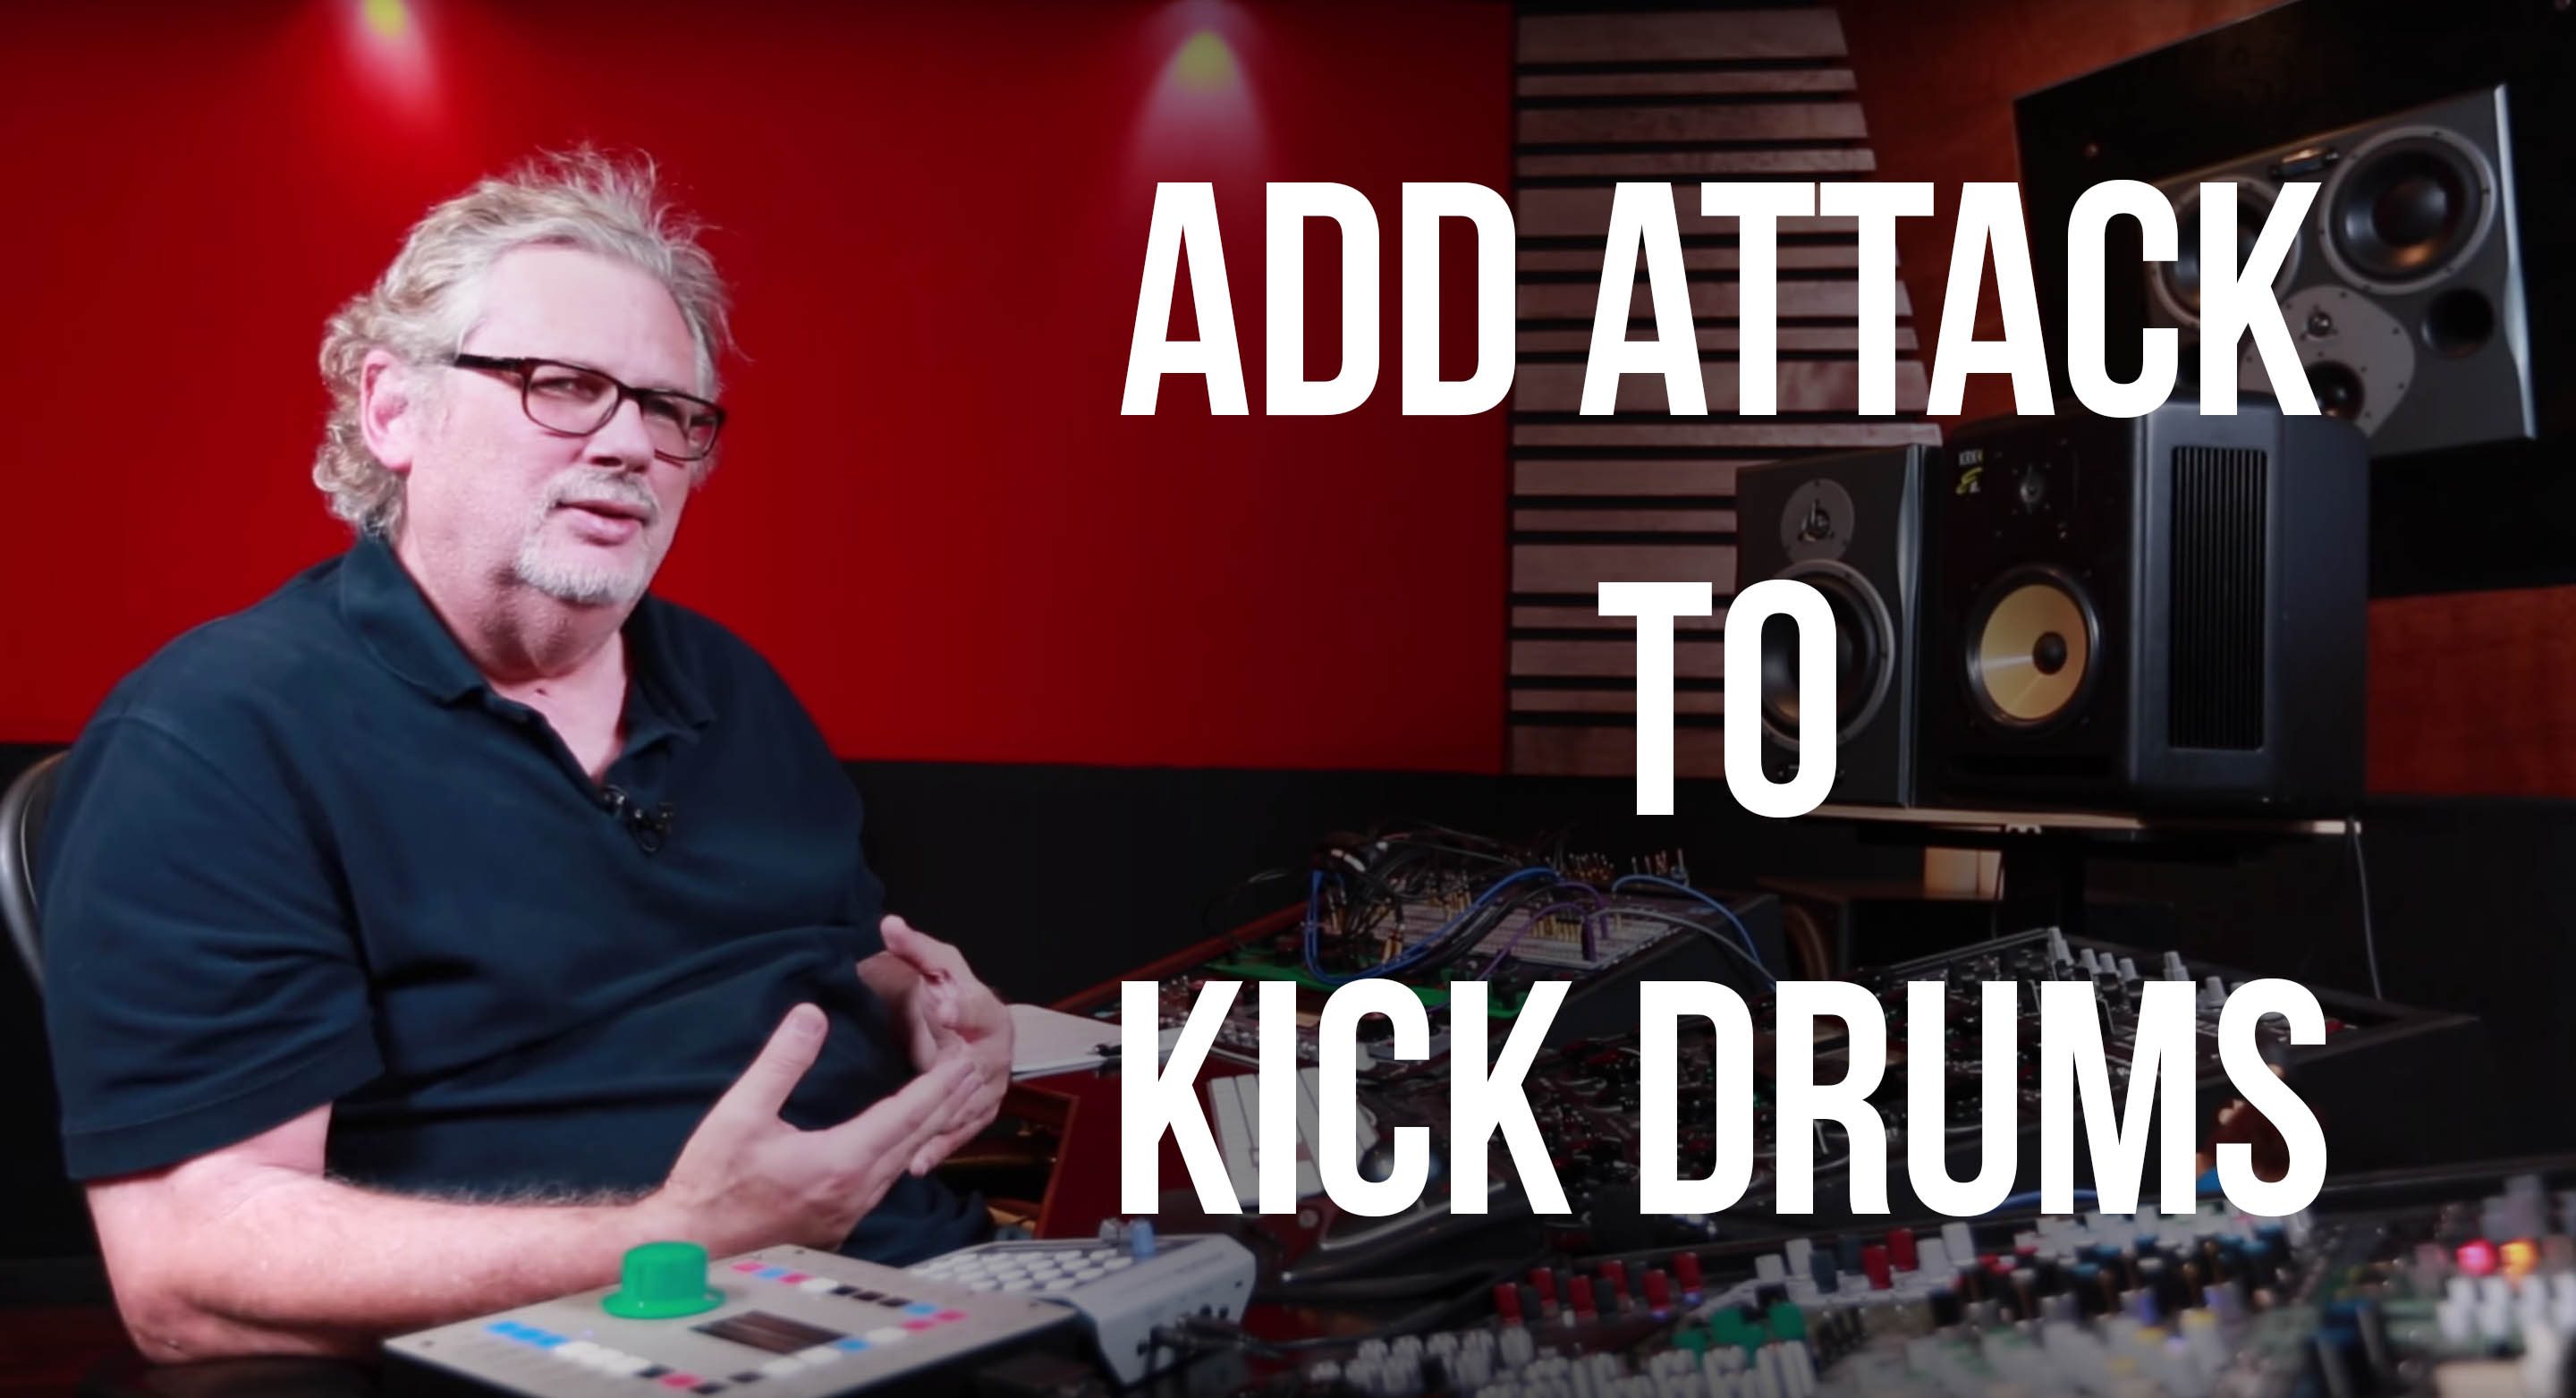 Adding Attack to Kick Drums